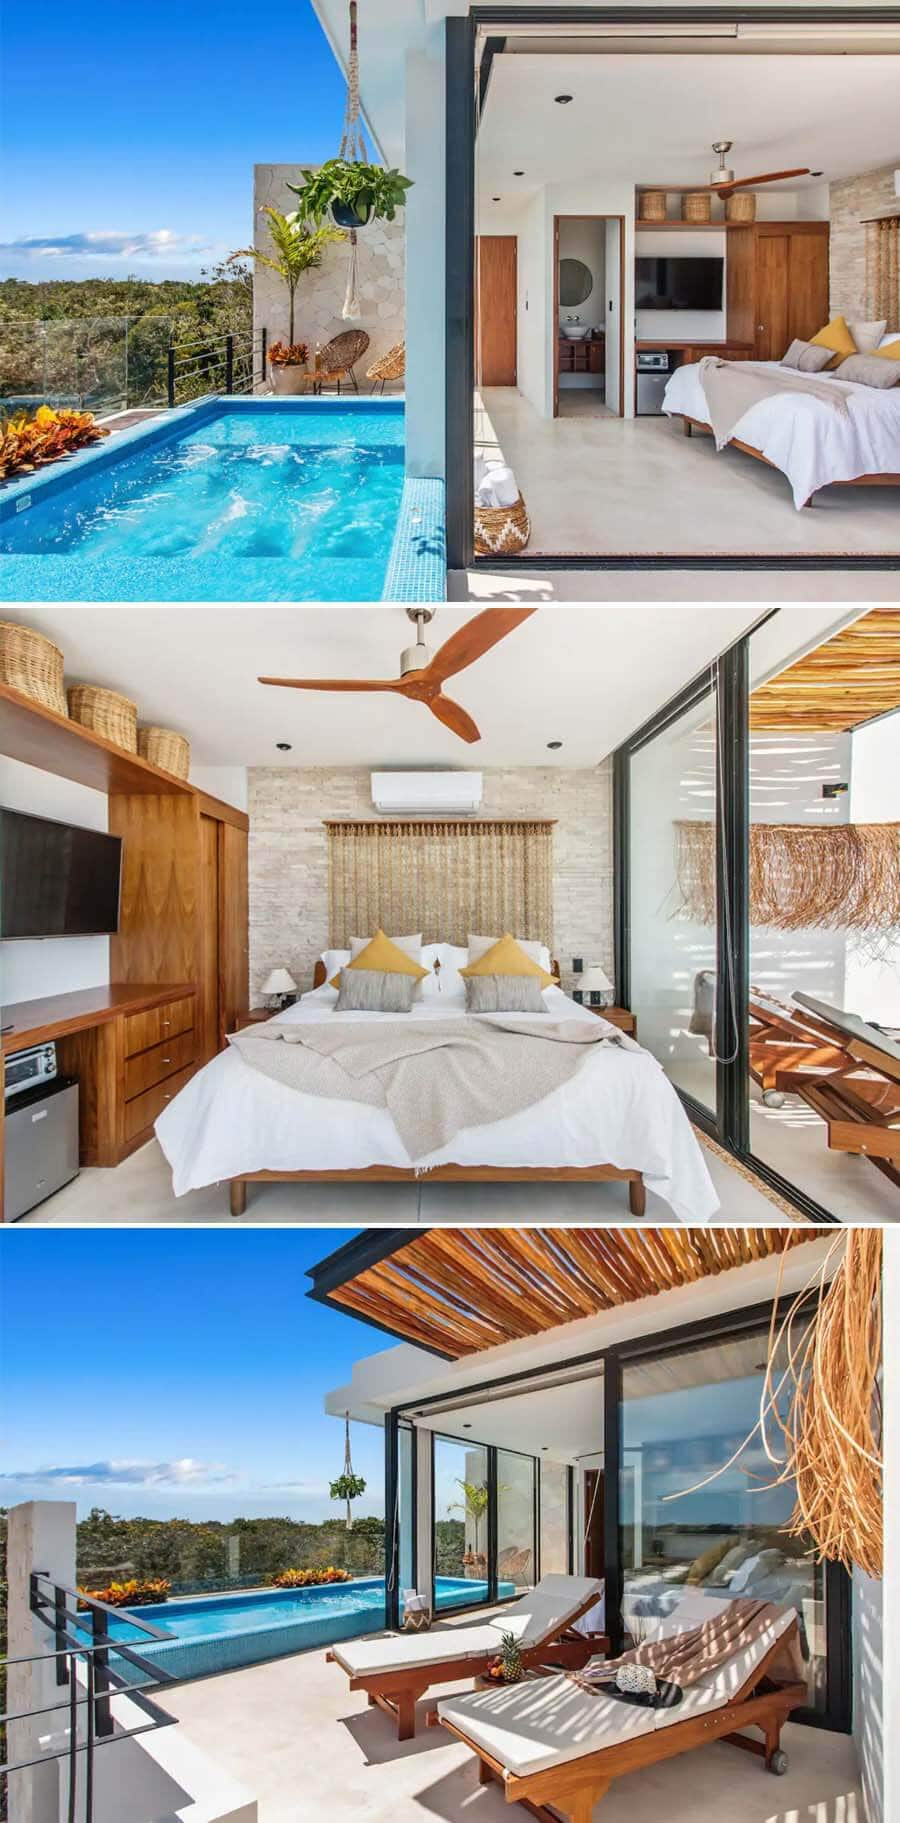 Best Airbnbs in Tulum - suite with pool and view